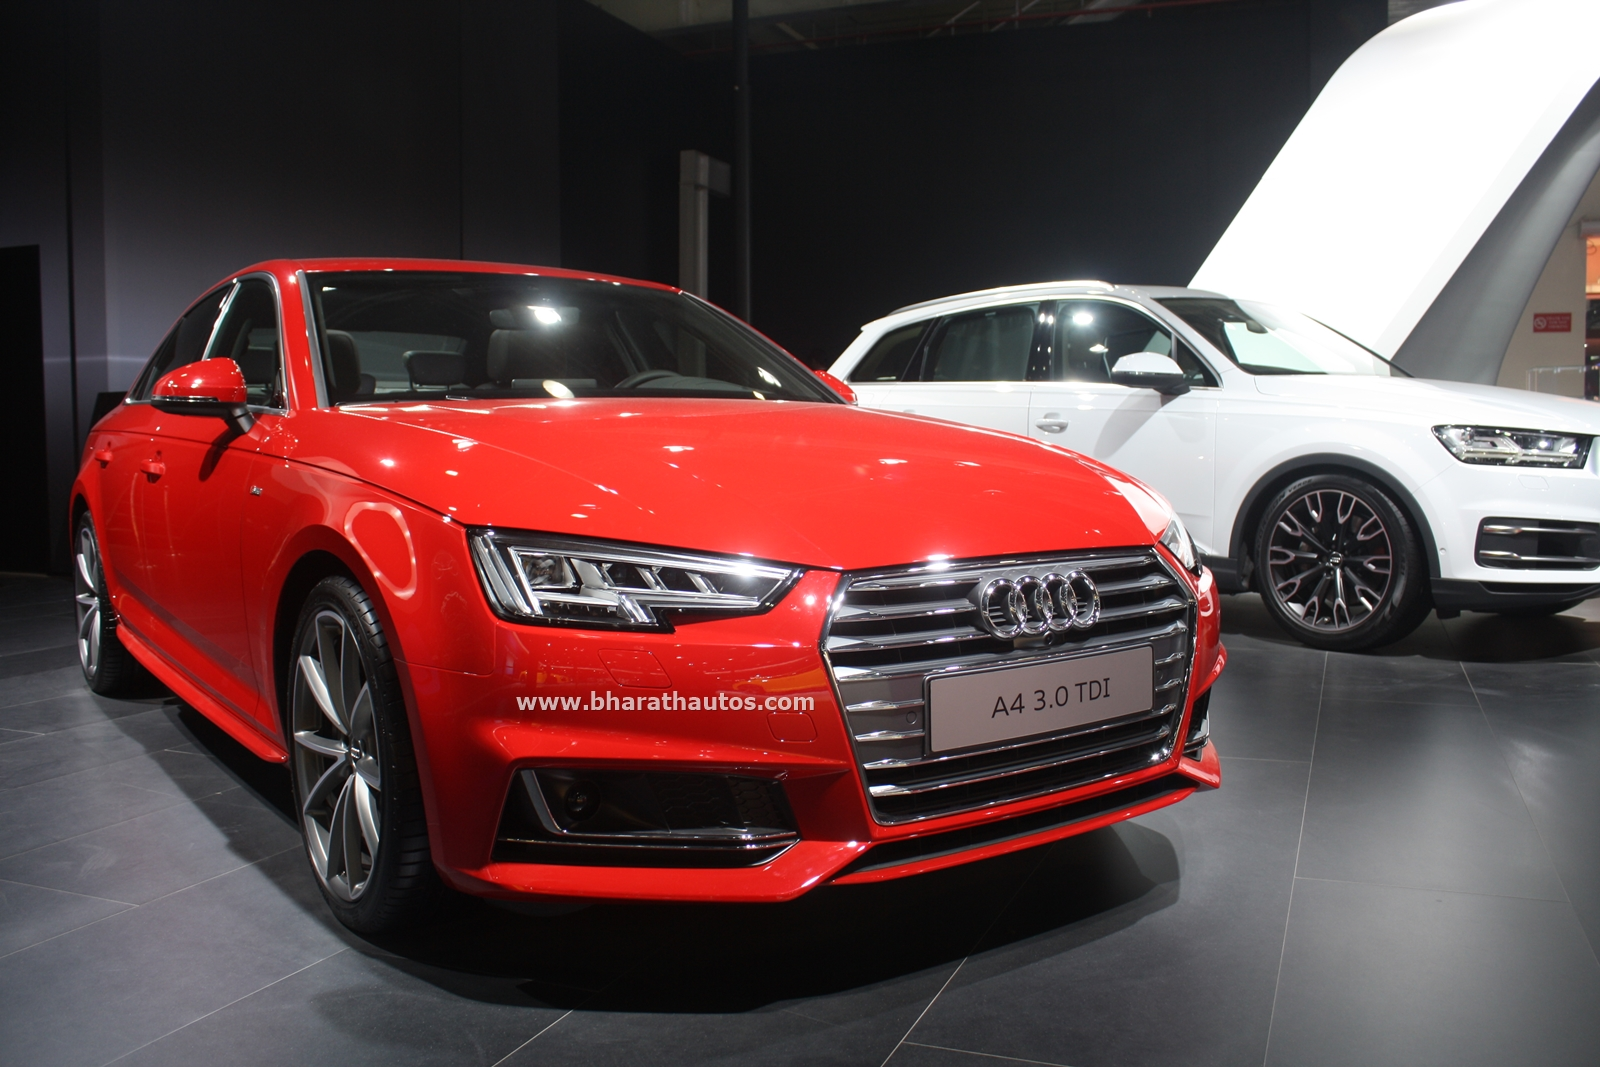 new 2016 audi a4 gets showcased for india 2016 auto expo. Black Bedroom Furniture Sets. Home Design Ideas